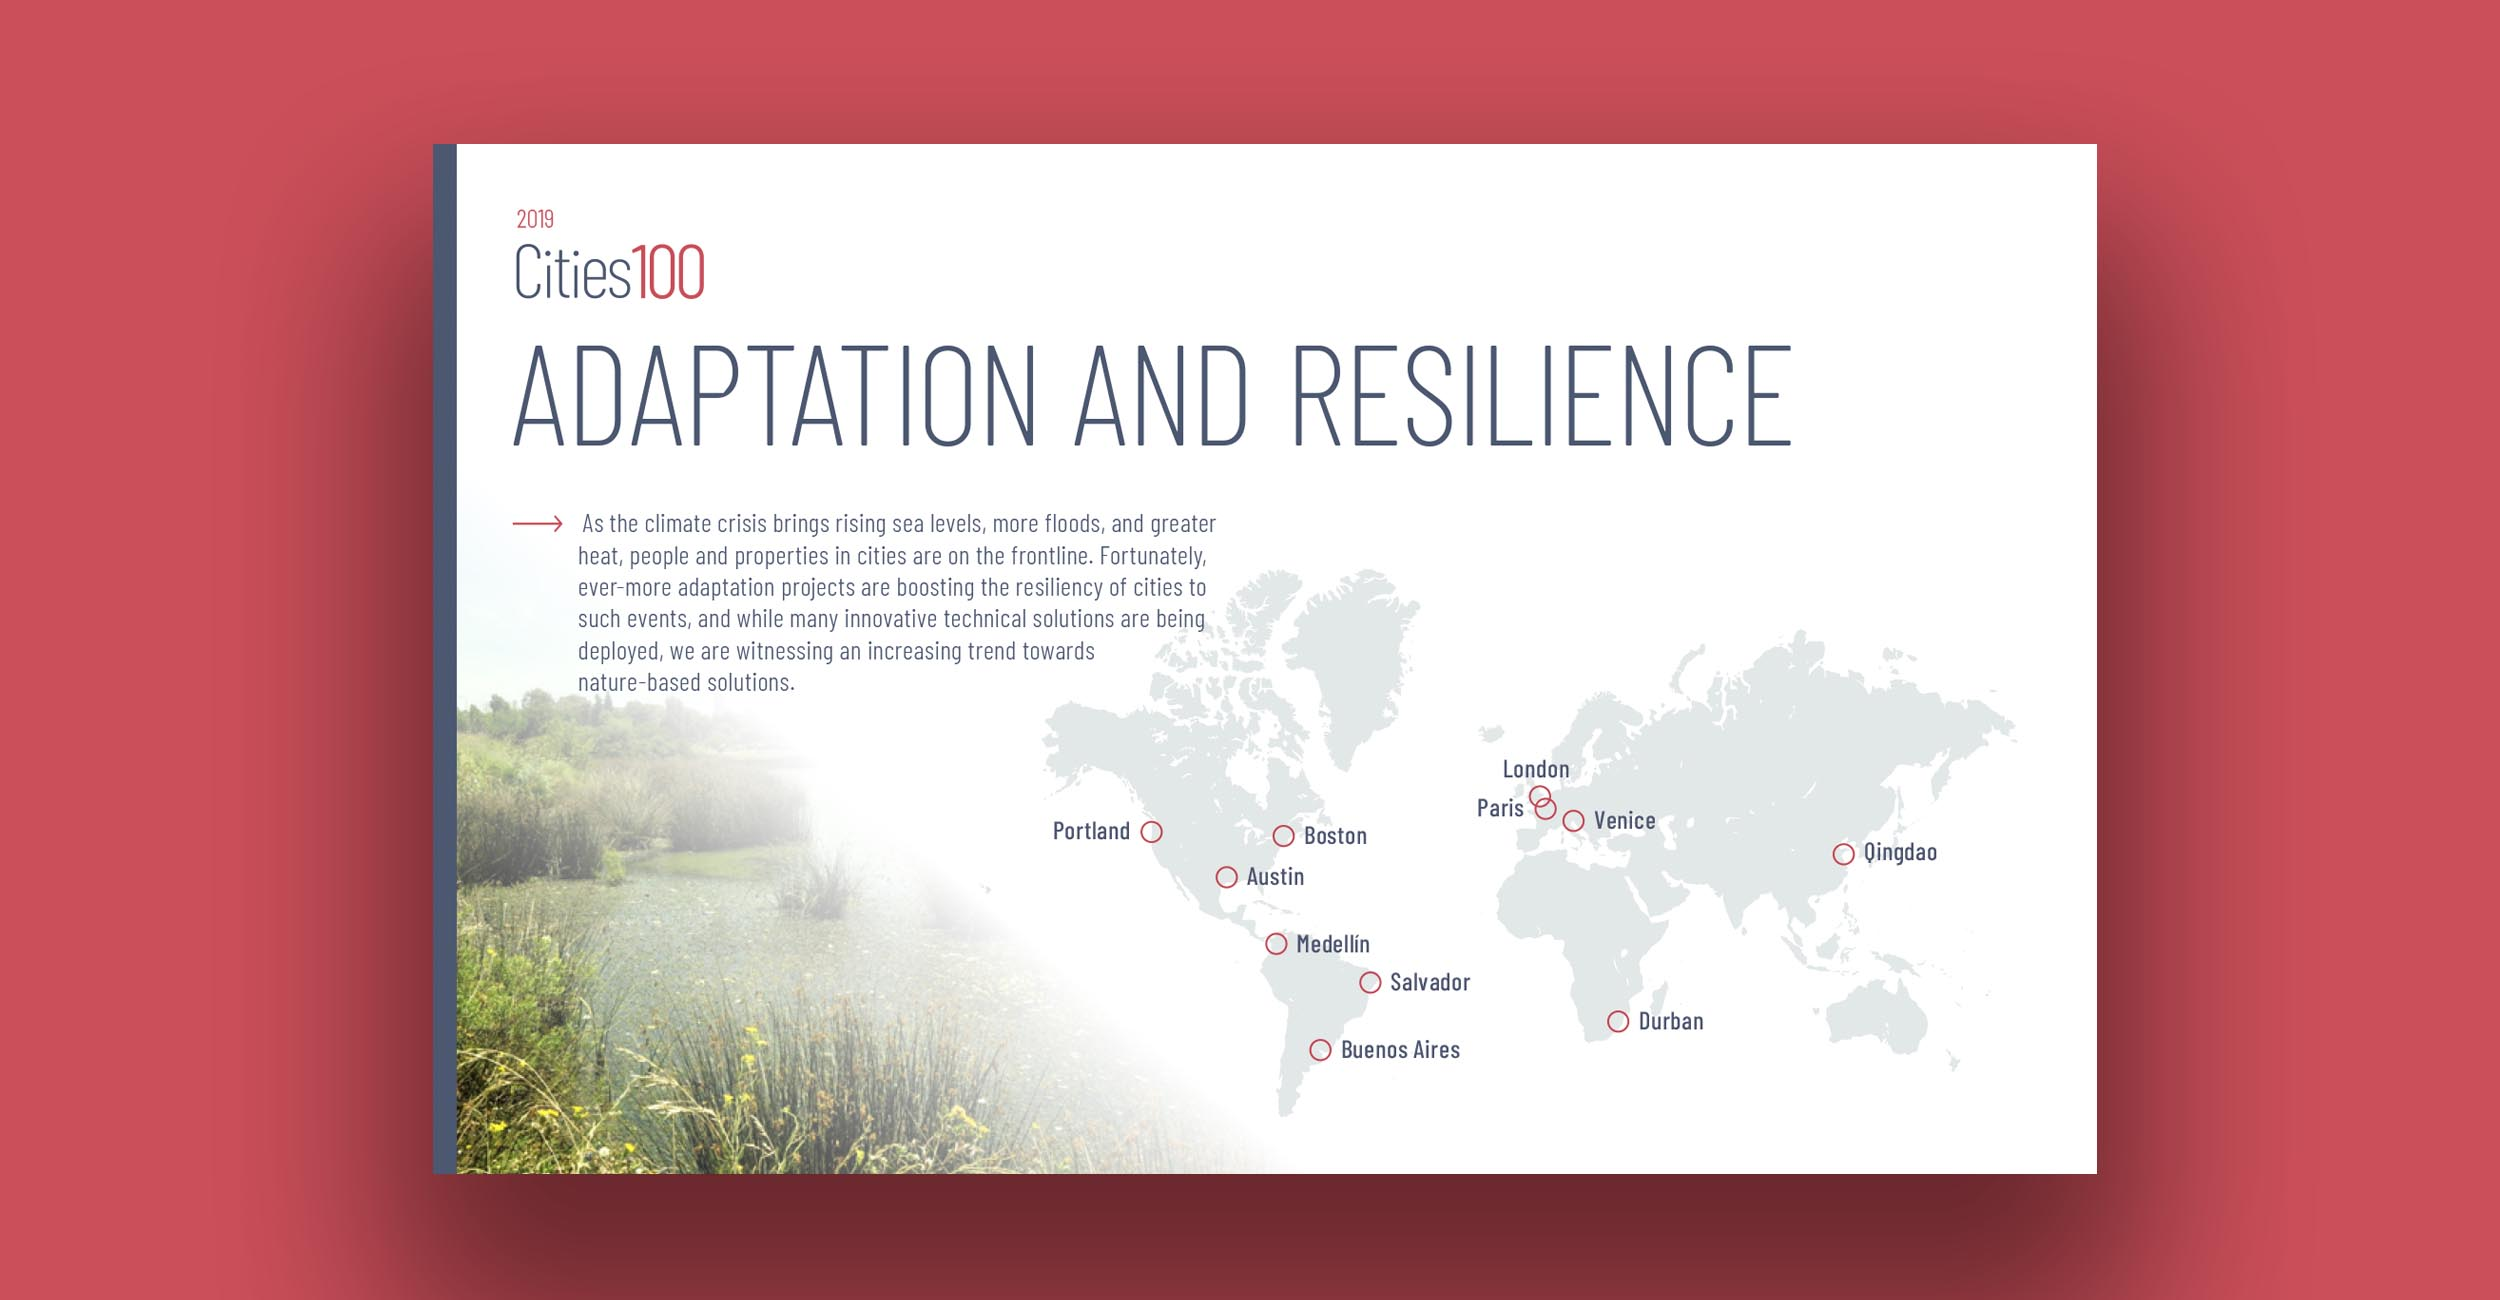 Adaptation and Resilience - As the climate crisis brings rising sea levels, more floods, and greater heat, people and properties in cities are on the frontline. Fortunately, ever-more adaptation projects are boosting the resiliency of cities to such events, and while many innovative technical solutions are being deployed, there has been an increasing trend towards implementing nature-based solutions.